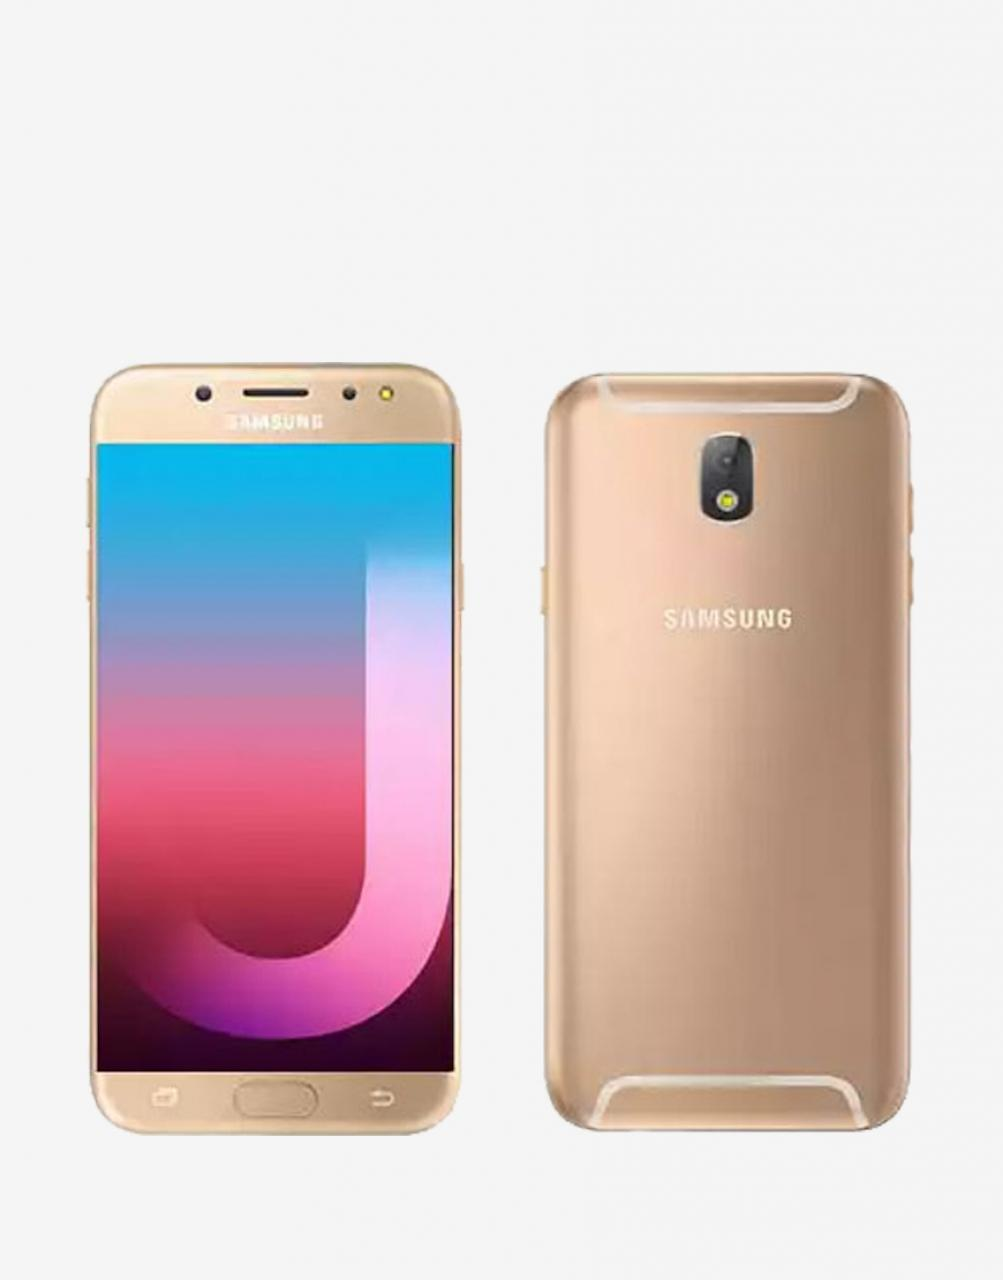 samsung galaxy j7 pro gold 64gb memory 3gb ram mobile phones price in sri lanka. Black Bedroom Furniture Sets. Home Design Ideas